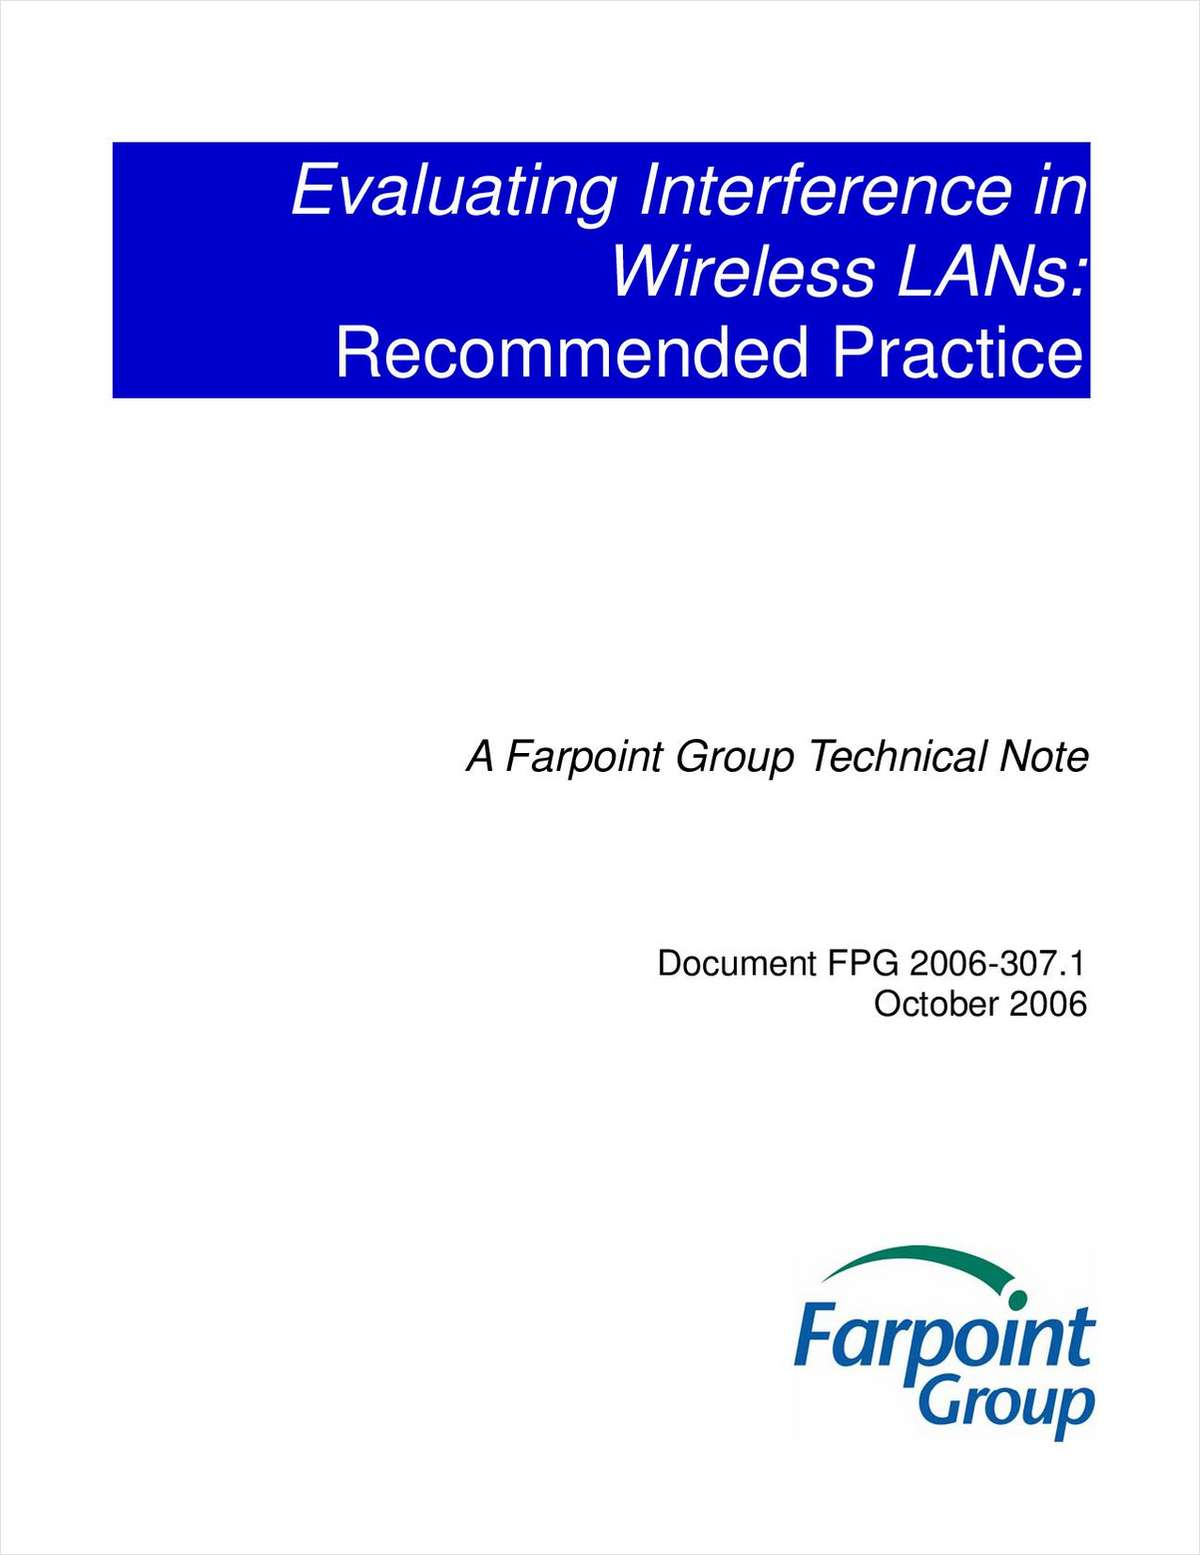 Evaluating Interference in Wireless LANs: Recommended Practice